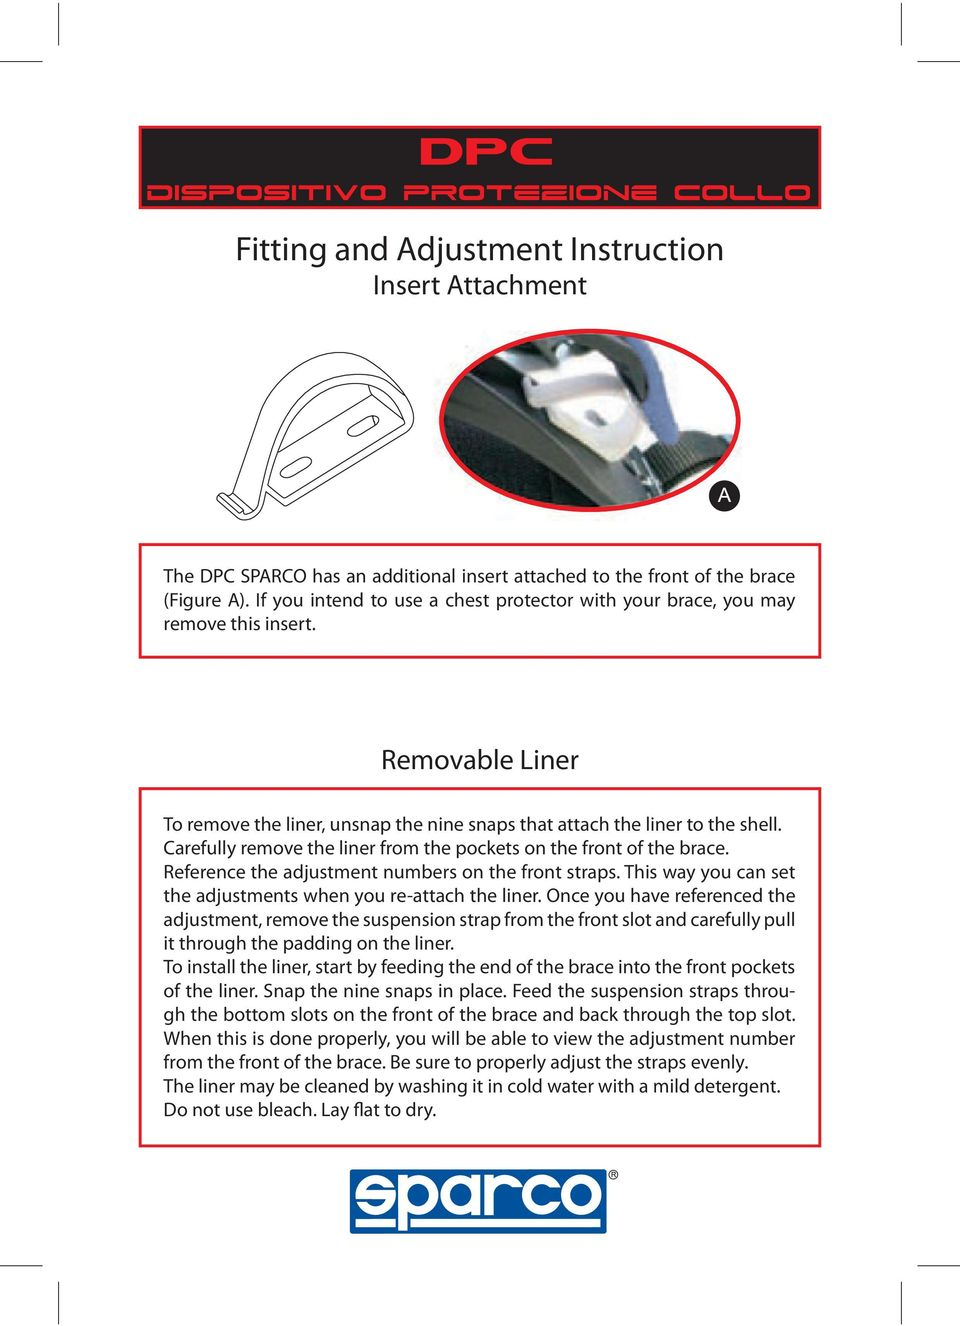 Carefully remove the liner from the pockets on the front of the brace. Reference the adjustment numbers on the front straps. This way you can set the adjustments when you re-attach the liner.